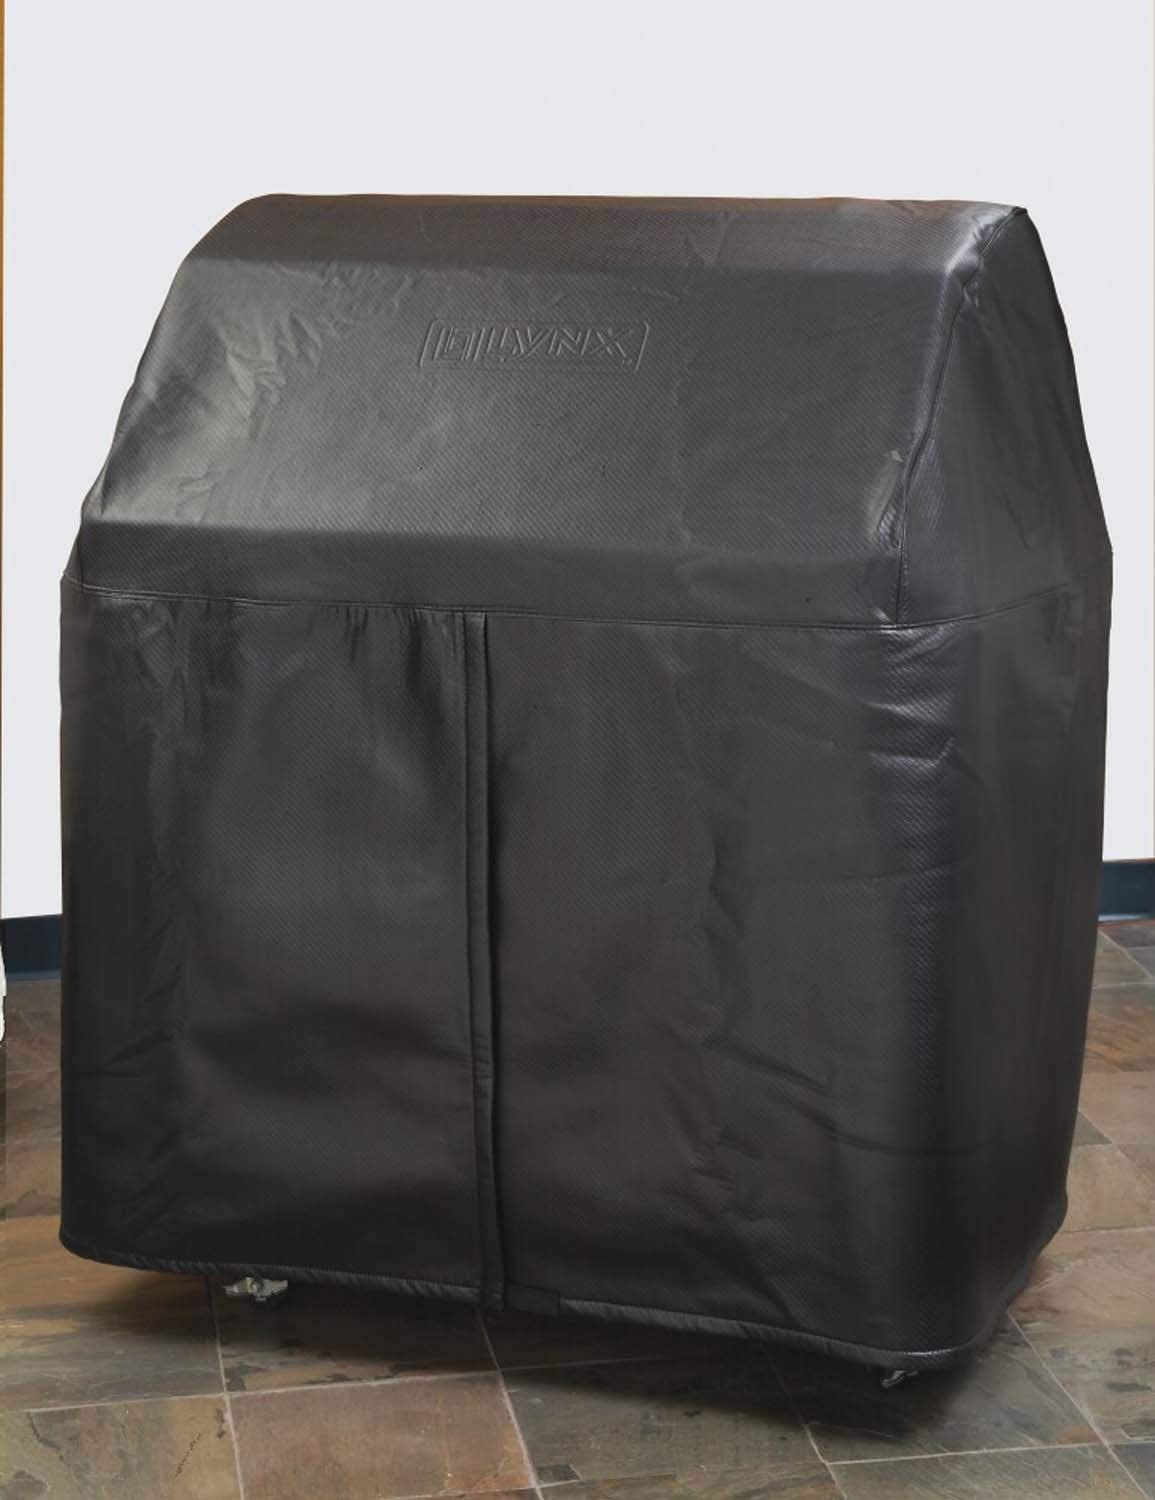 Lynx CC30F Vinyl Cover for Freestanding Grills, 30-Inch